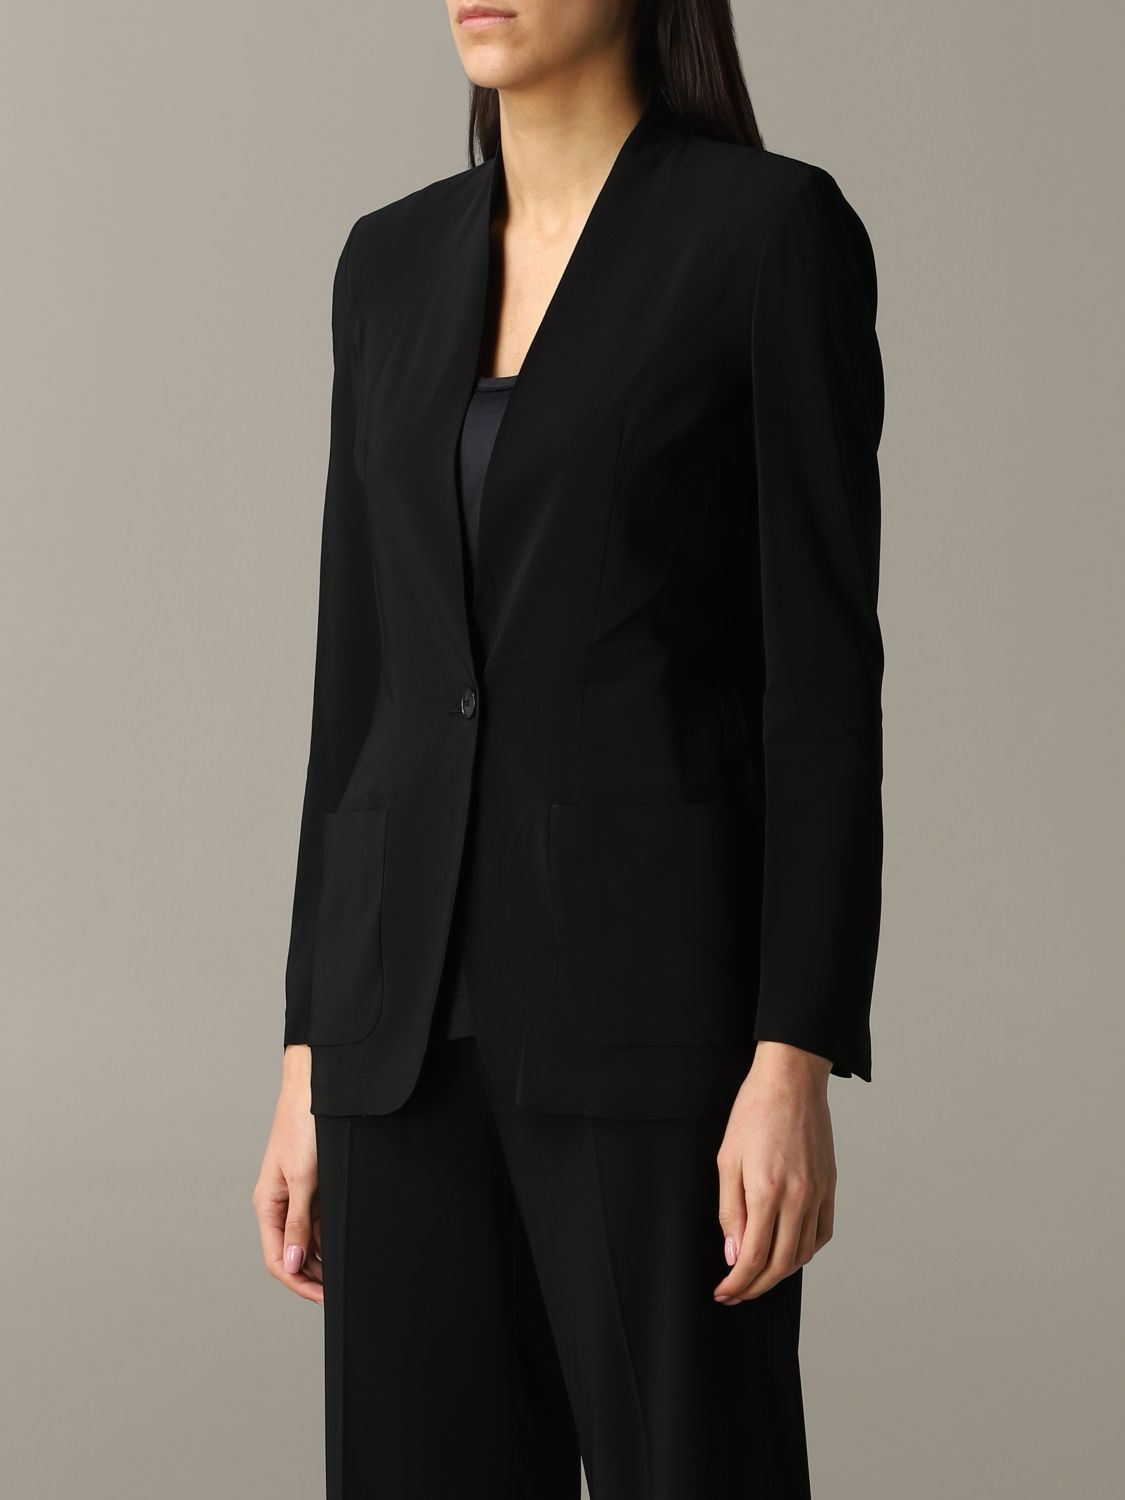 Jacket women Jucca black 3